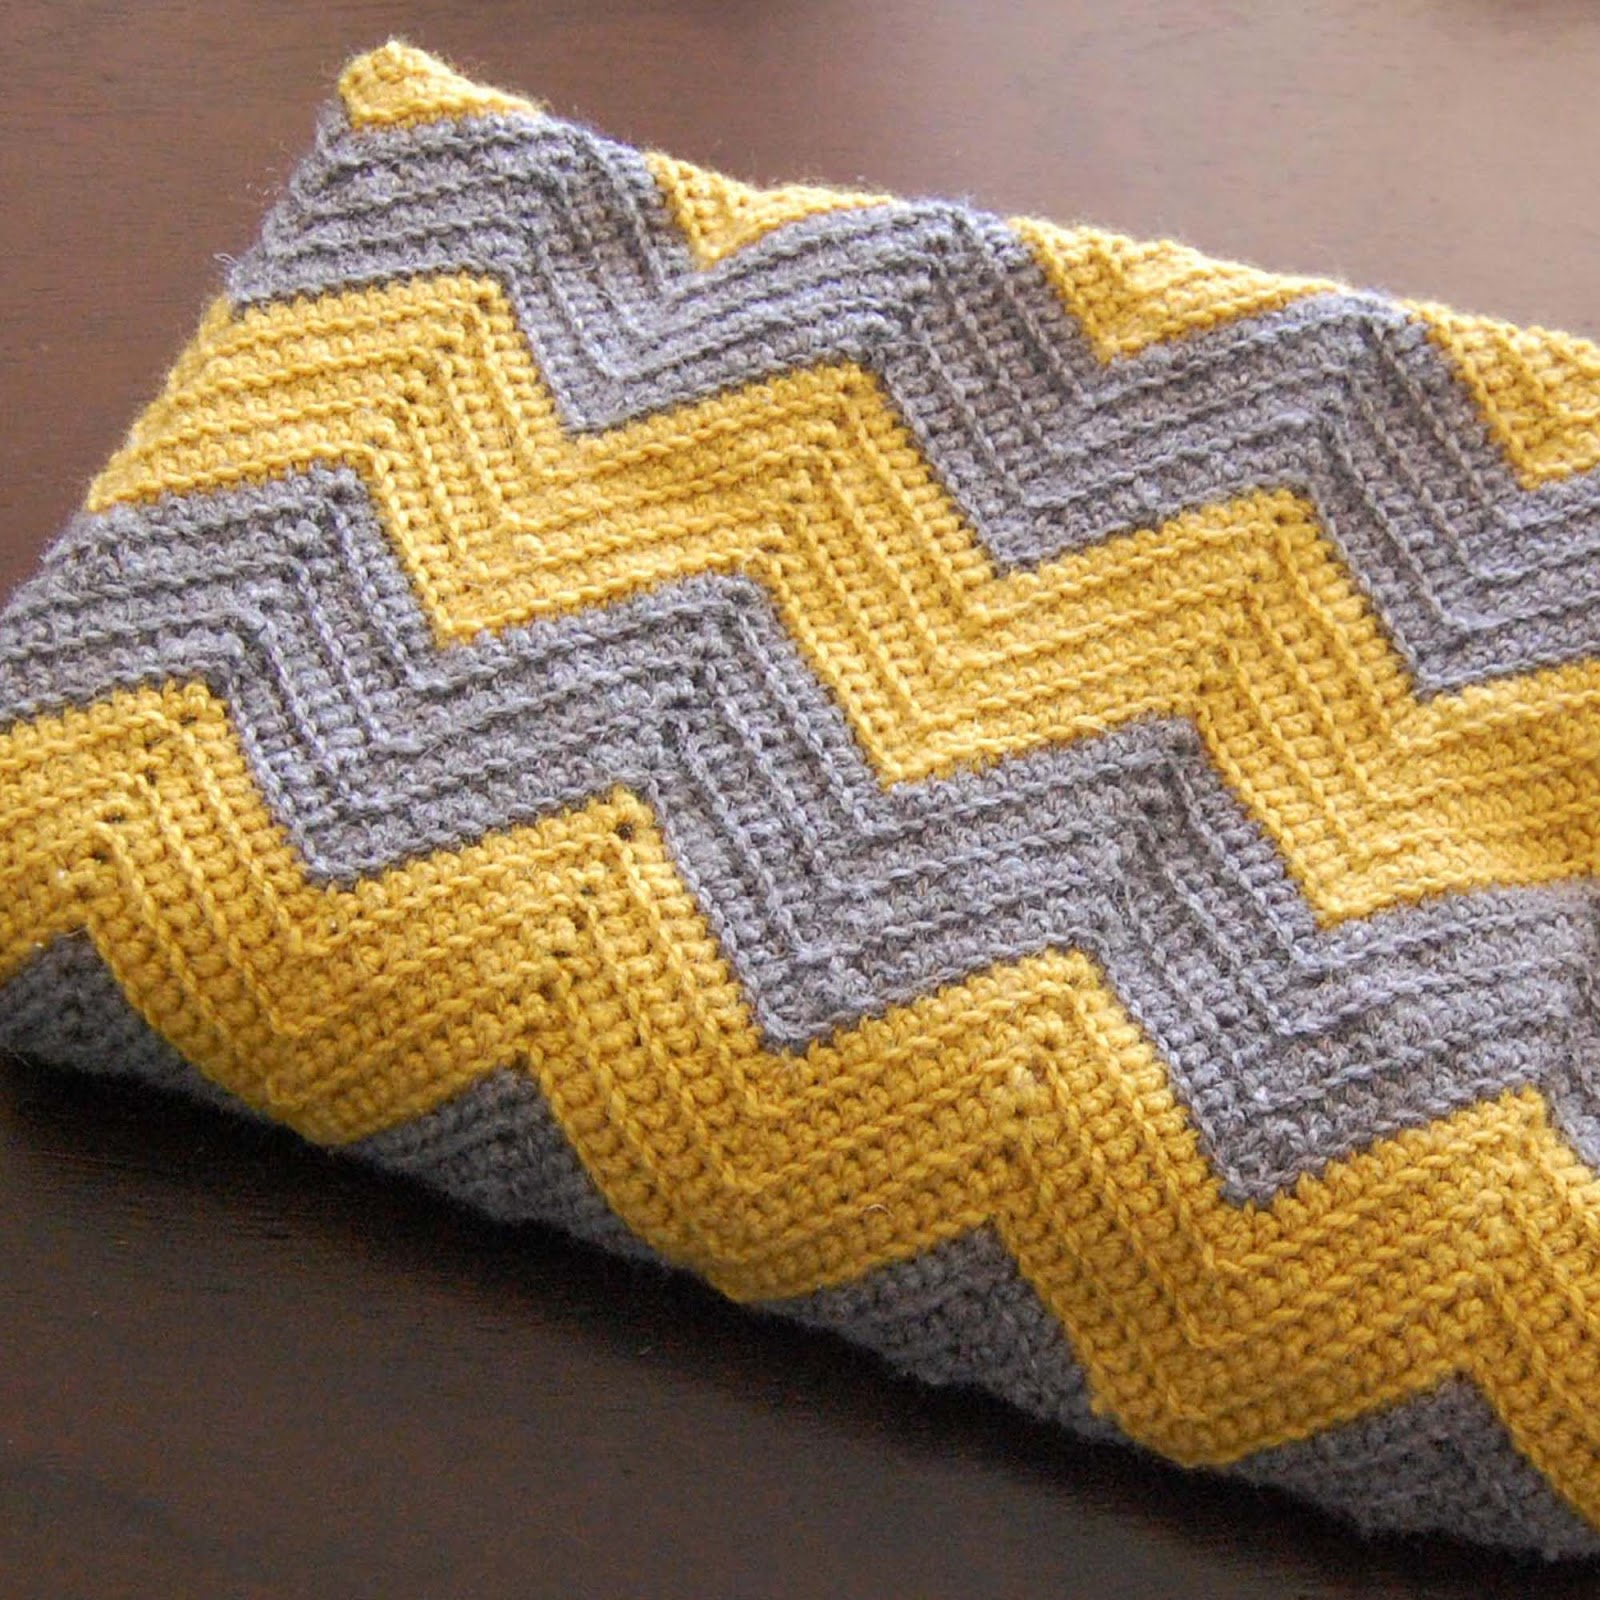 Crochet Pattern Chevron Baby Blanket : Yellow Dandy : DIY Crochet Chevron Baby Blanket